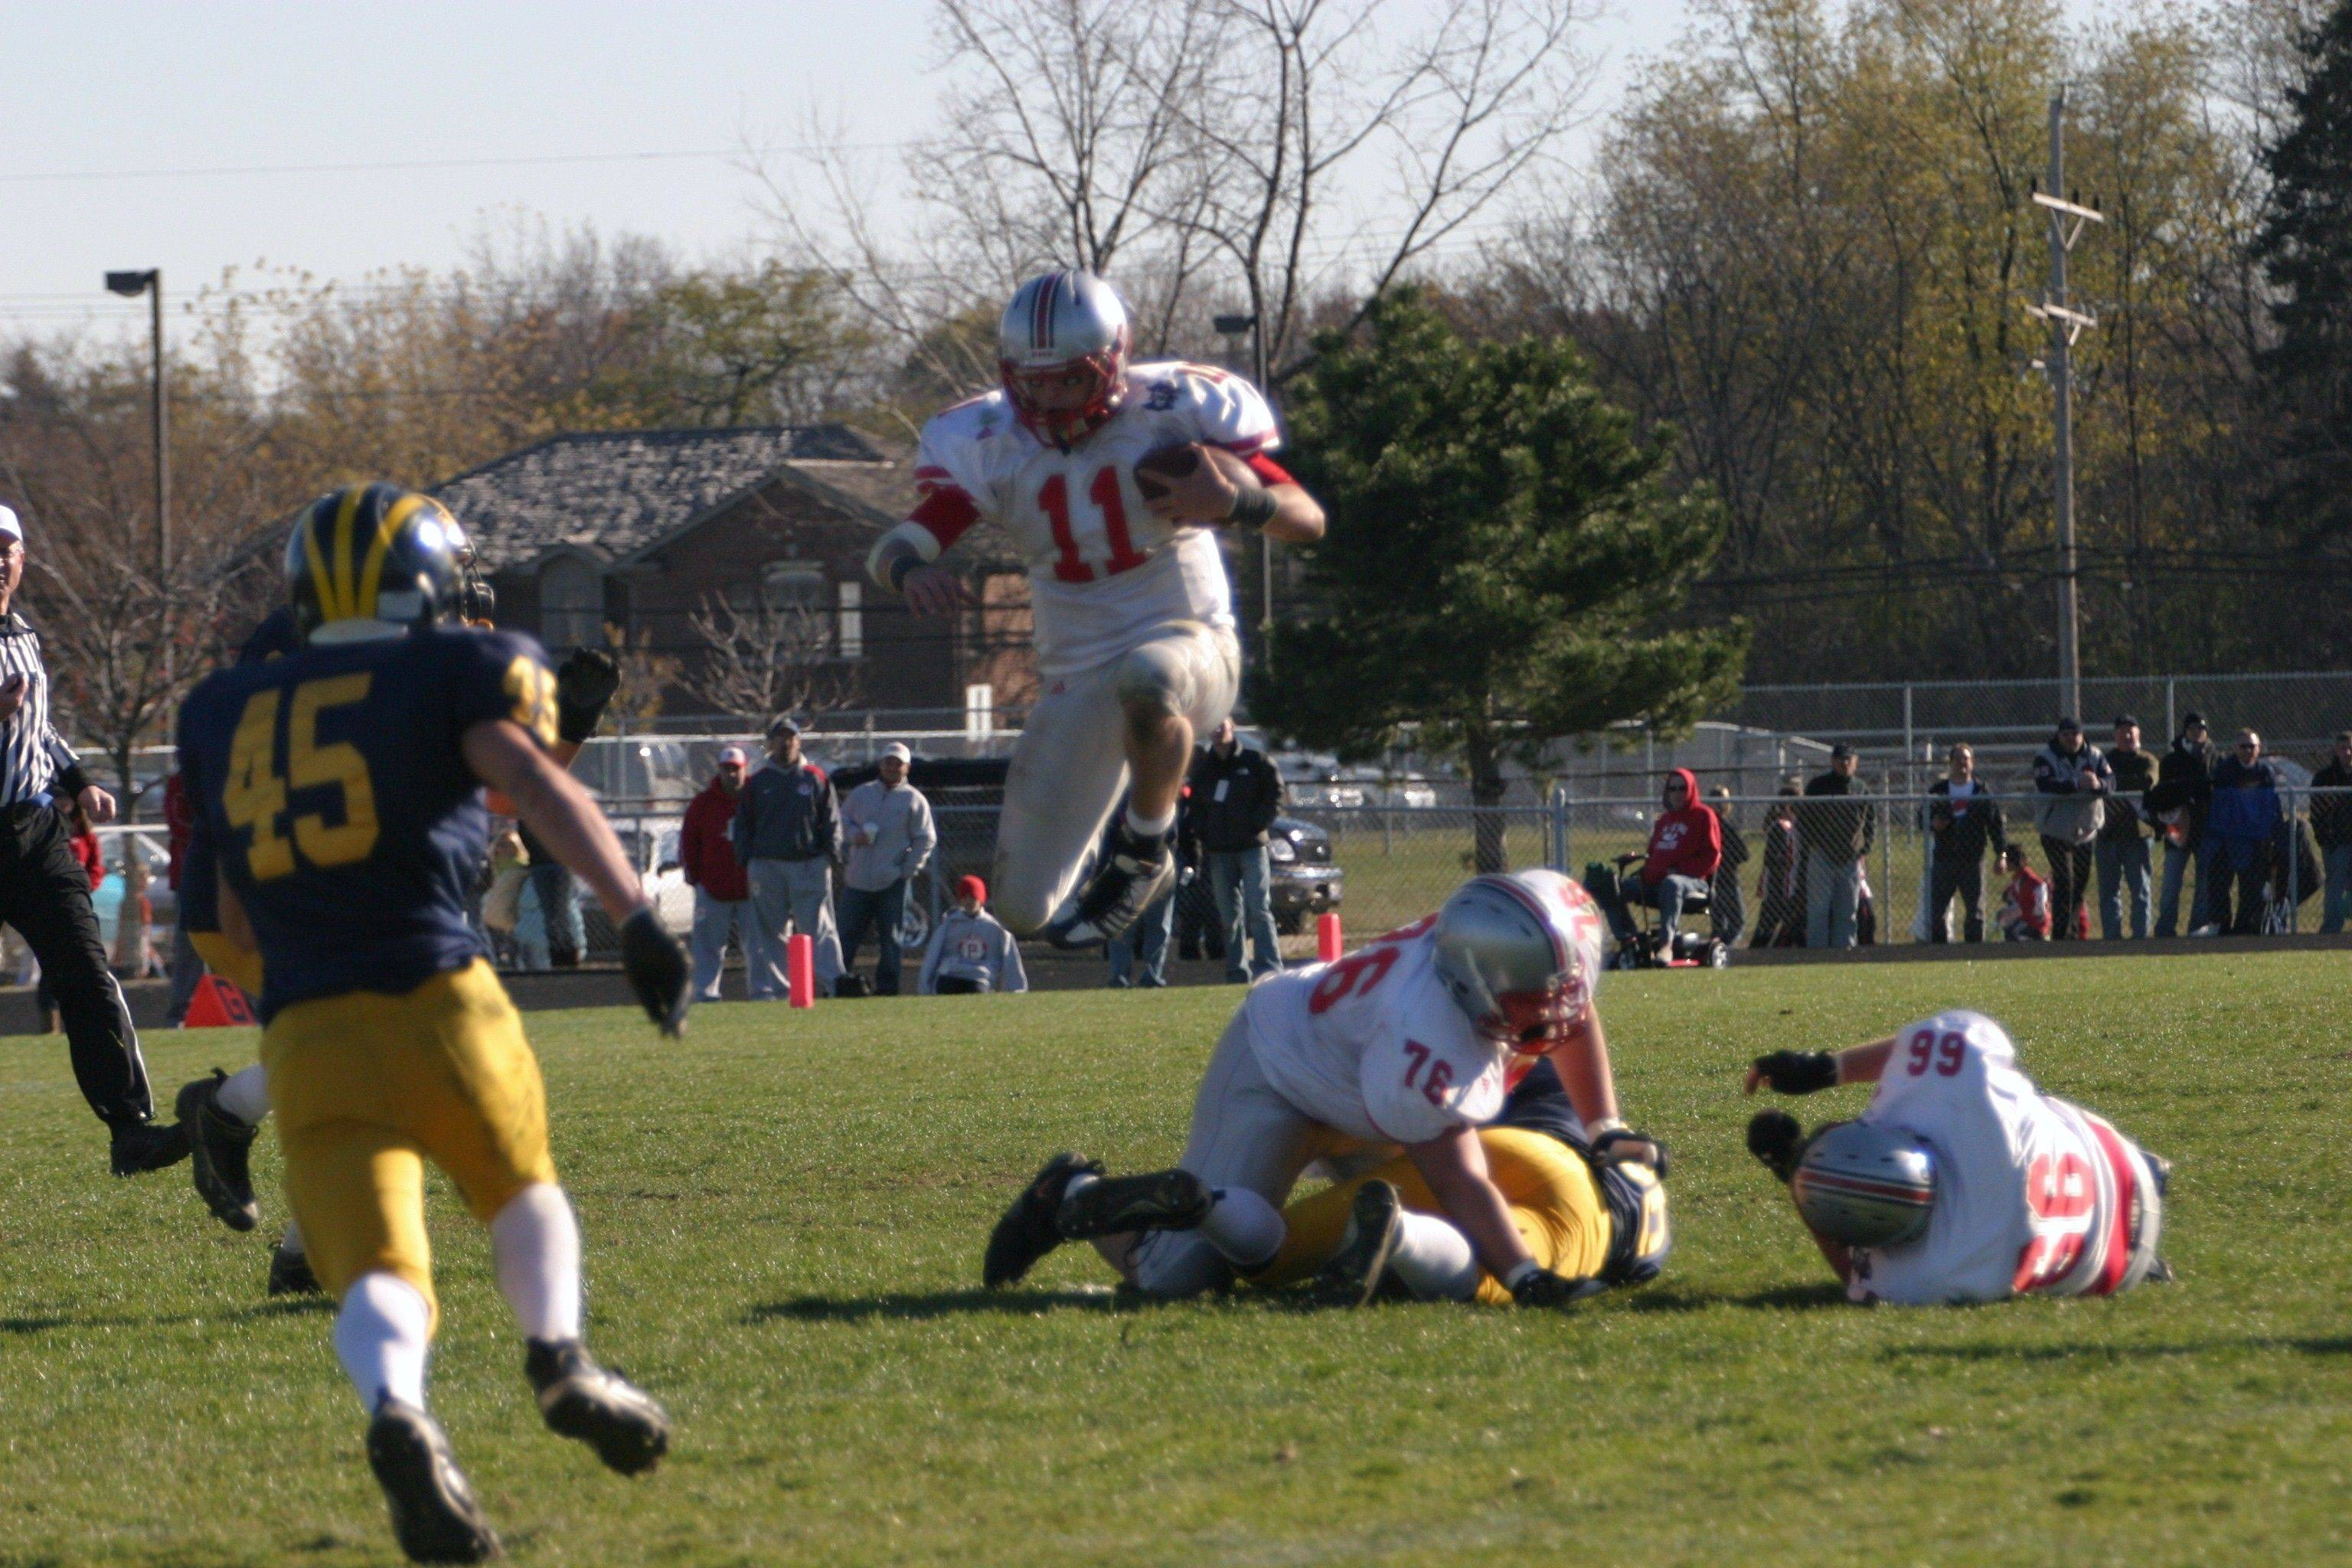 Palatine quarterback Cody Bobbit hurdles a tackler to gain some yards Saturday in Class 8A playoff action at Glenbrook South.